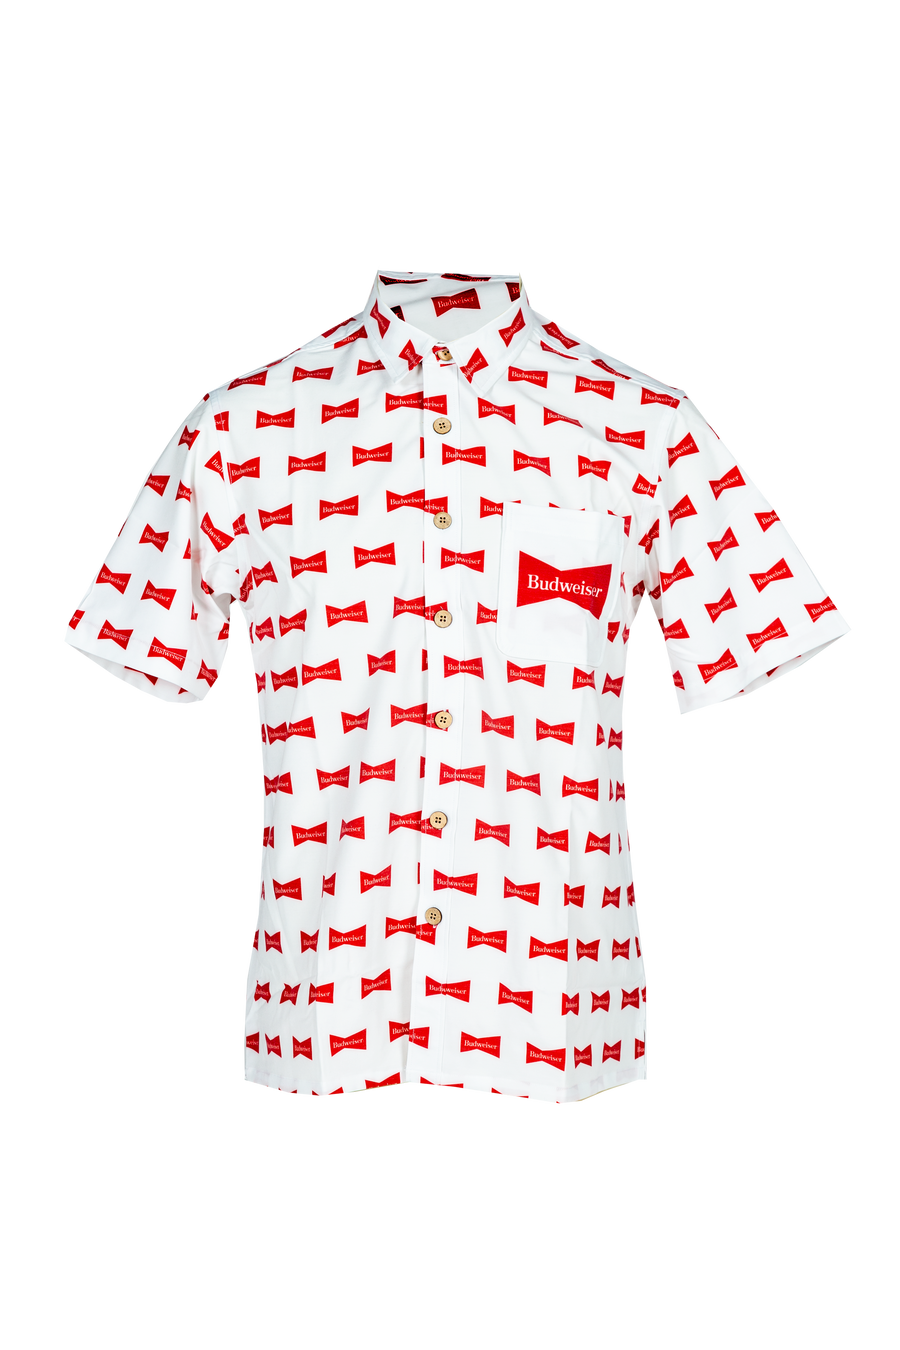 Budweiser Scatter Bowtie Camp Shirt